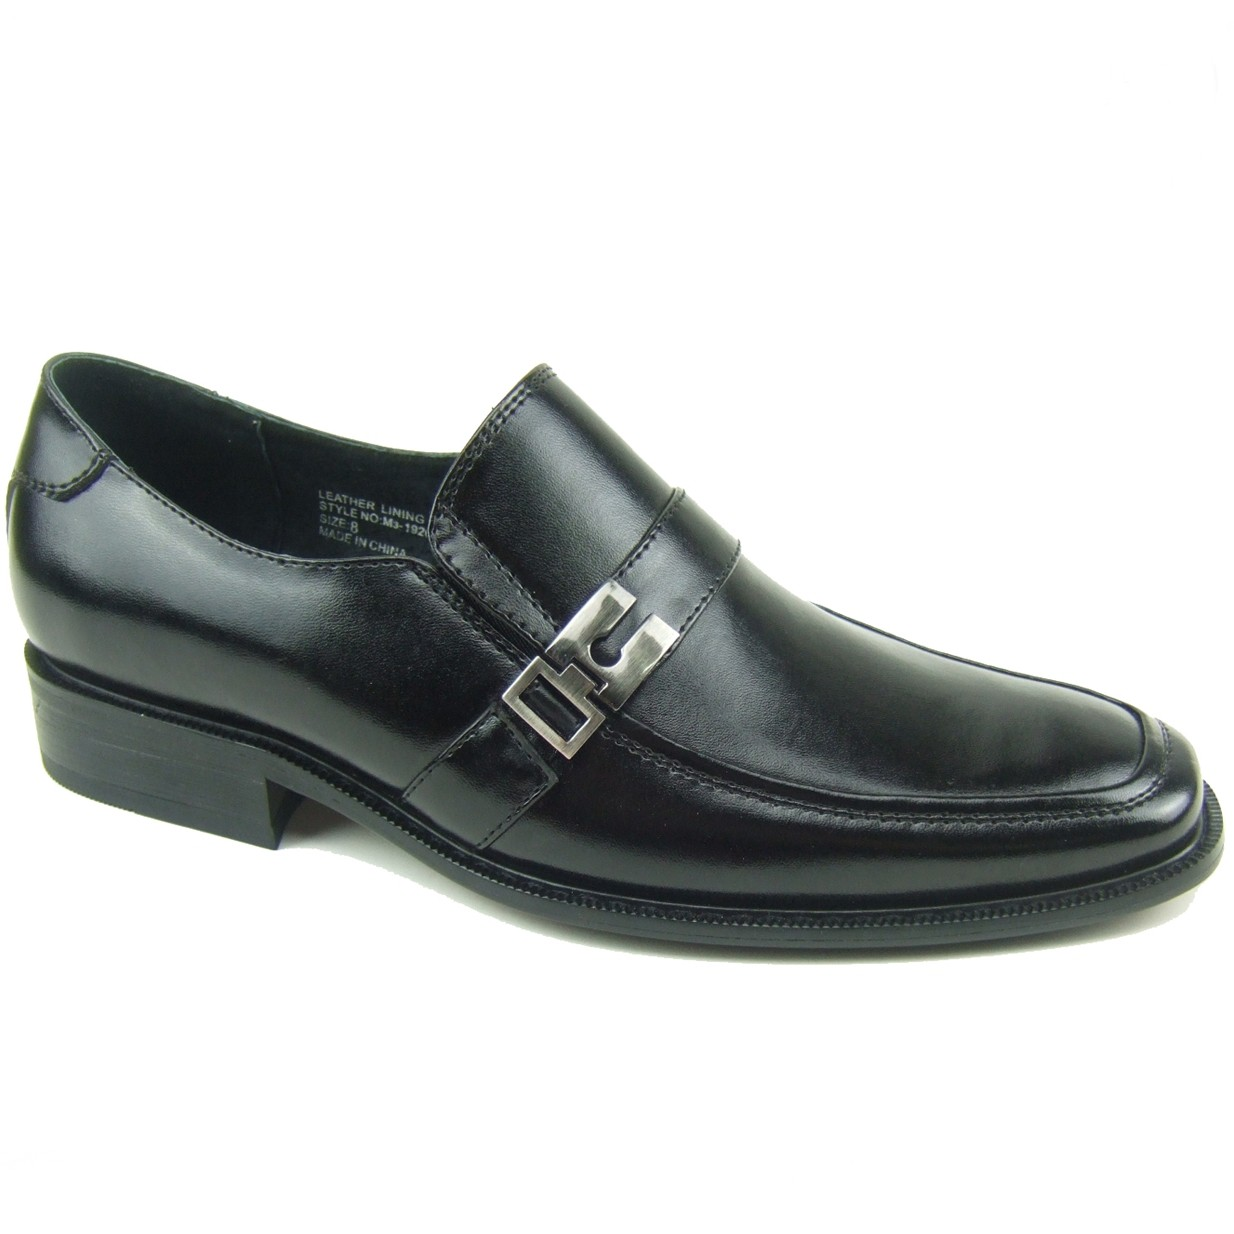 mens slip on loafers buckle suede lined moc toe